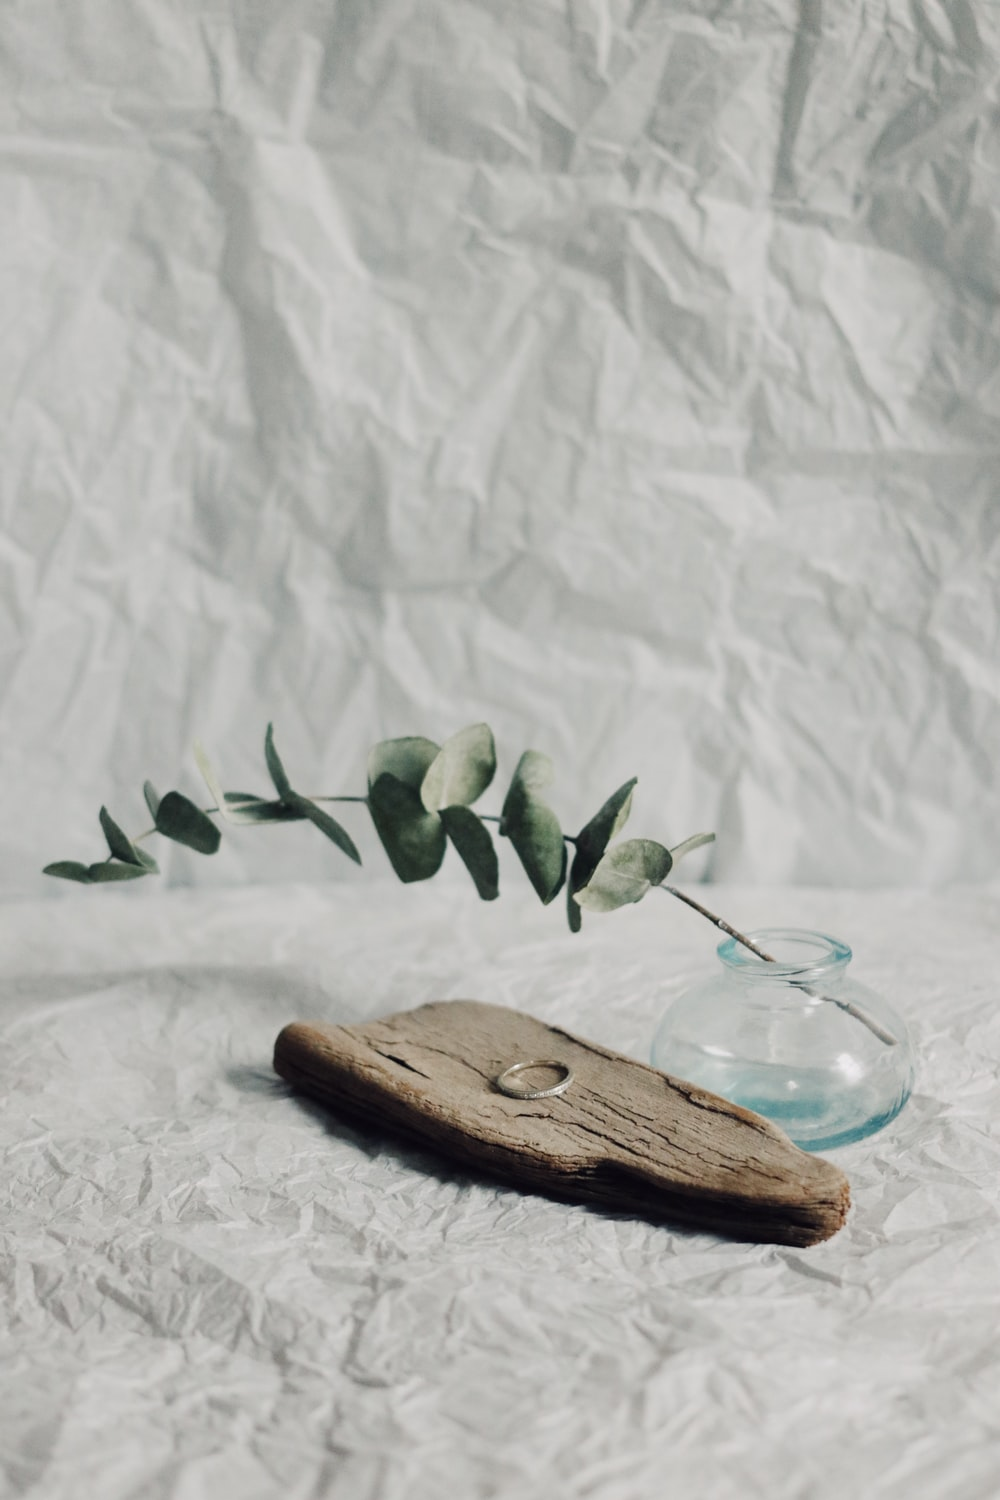 green leaves on blue glass bowl